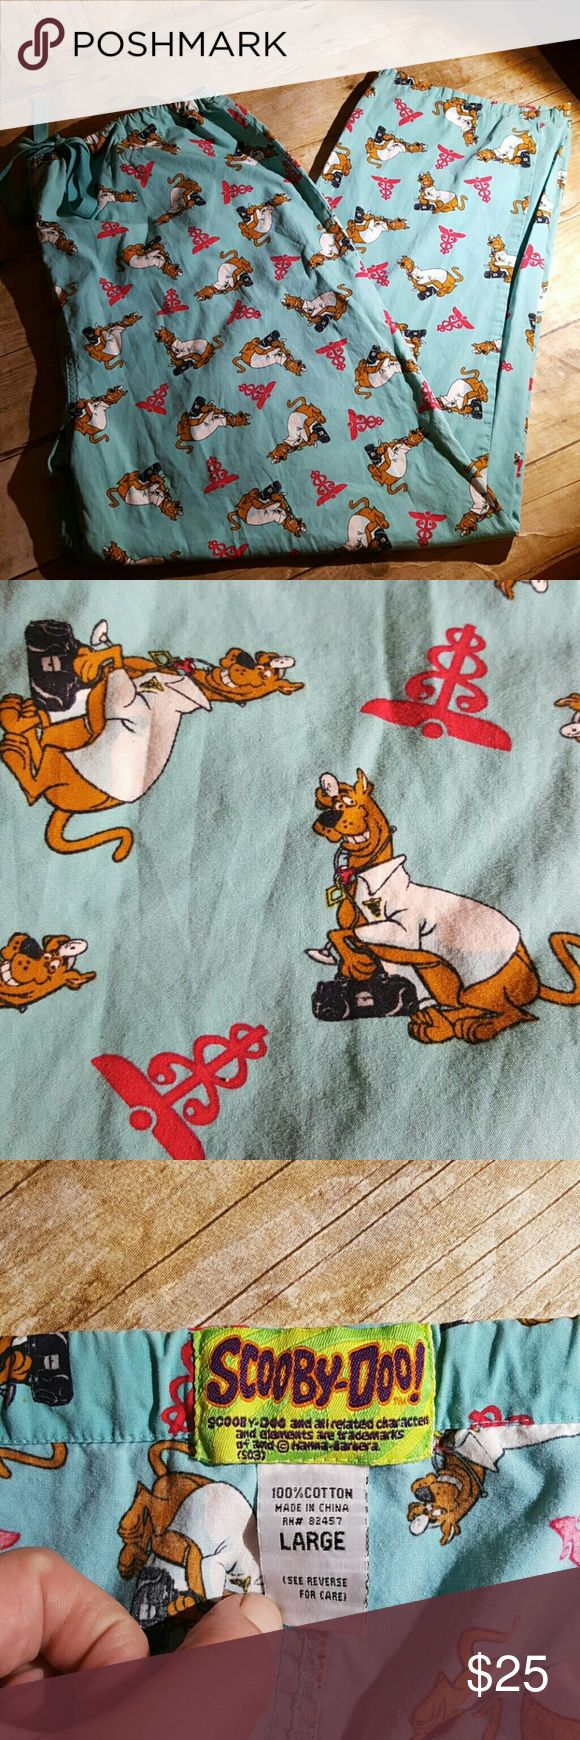 Scooby-Doo LARGE Dr. Scooby Medical Scrubs COMFY Scooby-Doo LARGE Dr. Scooby Medical Scrubs COMFY. EUC, LIKE NEW.   Do you know a Scooby-Doo lover who love scrubs that wants to Netflix and chill after opening up presents???If so. ... these are the gift you been looking for :-) Other